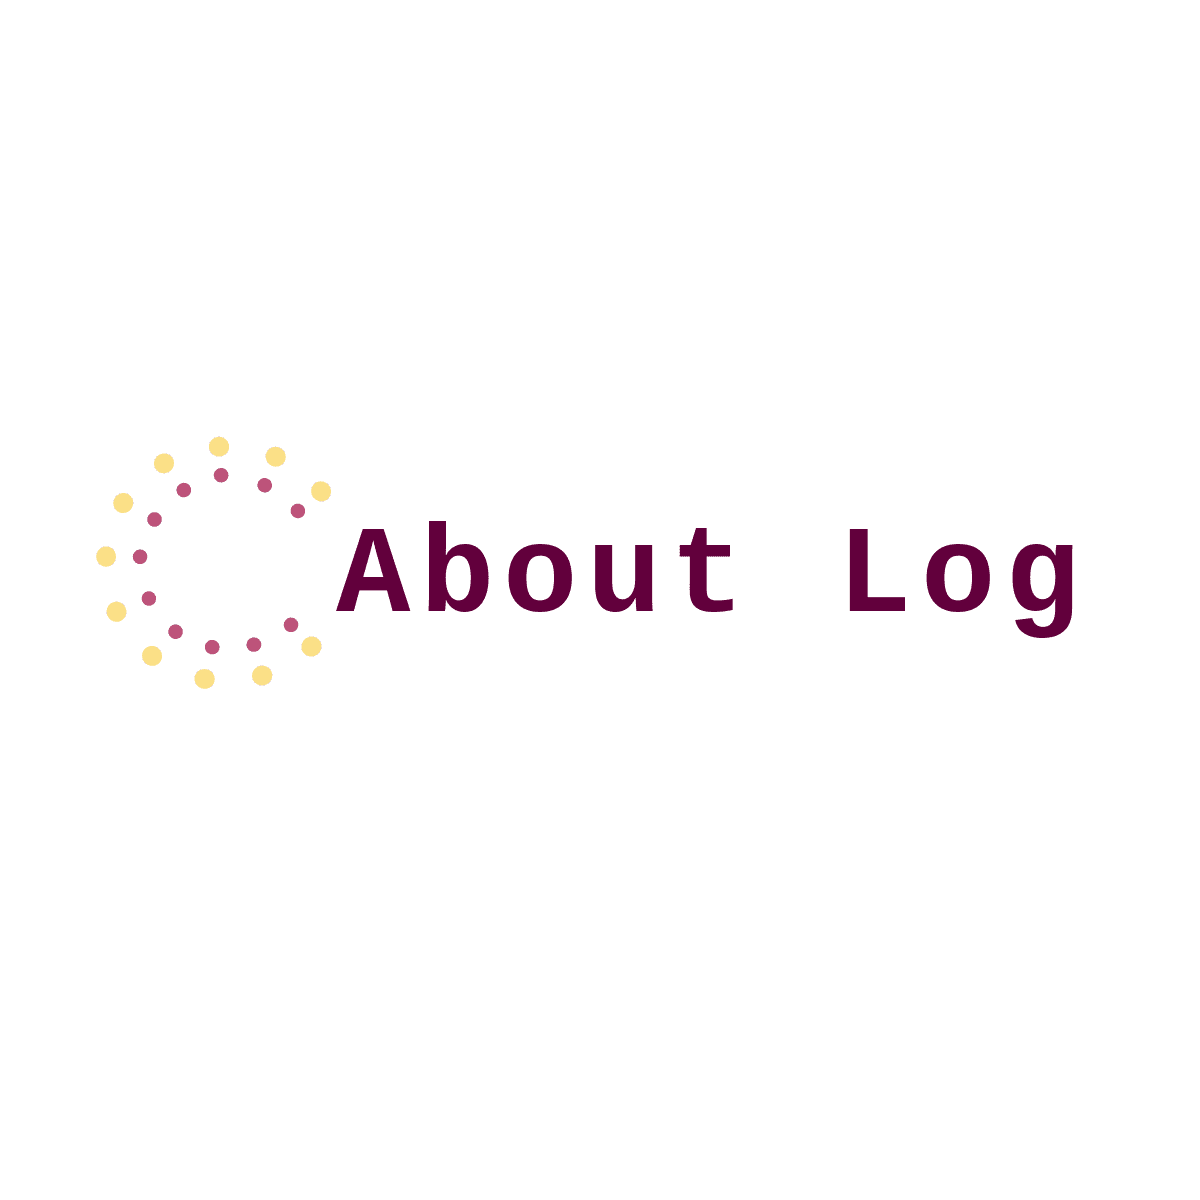 About Log